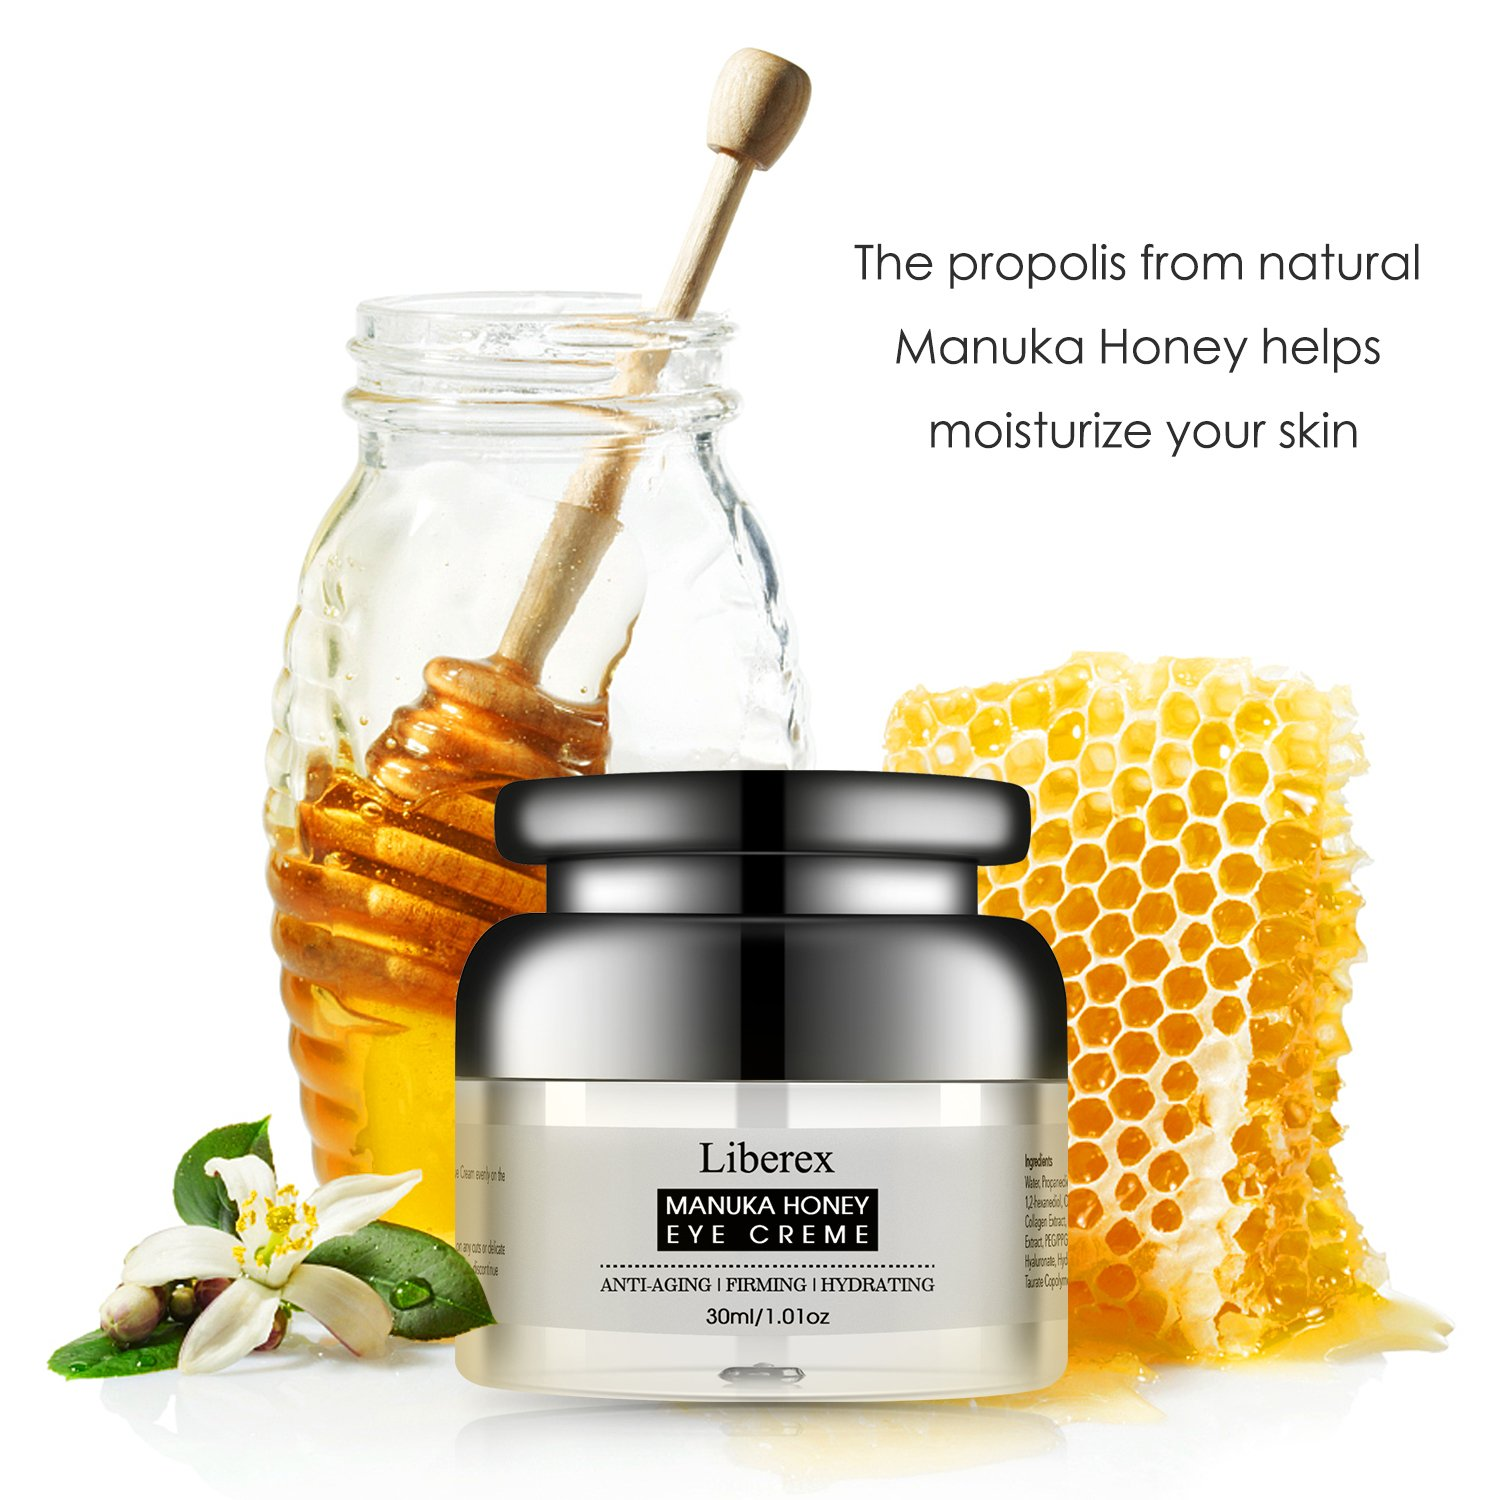 Liberex Honey Eye Cream For Women Men Dark Circles Puffiness Bio Treatment Essence In Oil 60ml Free Miracle Water 30ml Wrinkles And Bags Reducer With Natural Propolis From Manuka Under Around Eyes 101 Oz Beauty